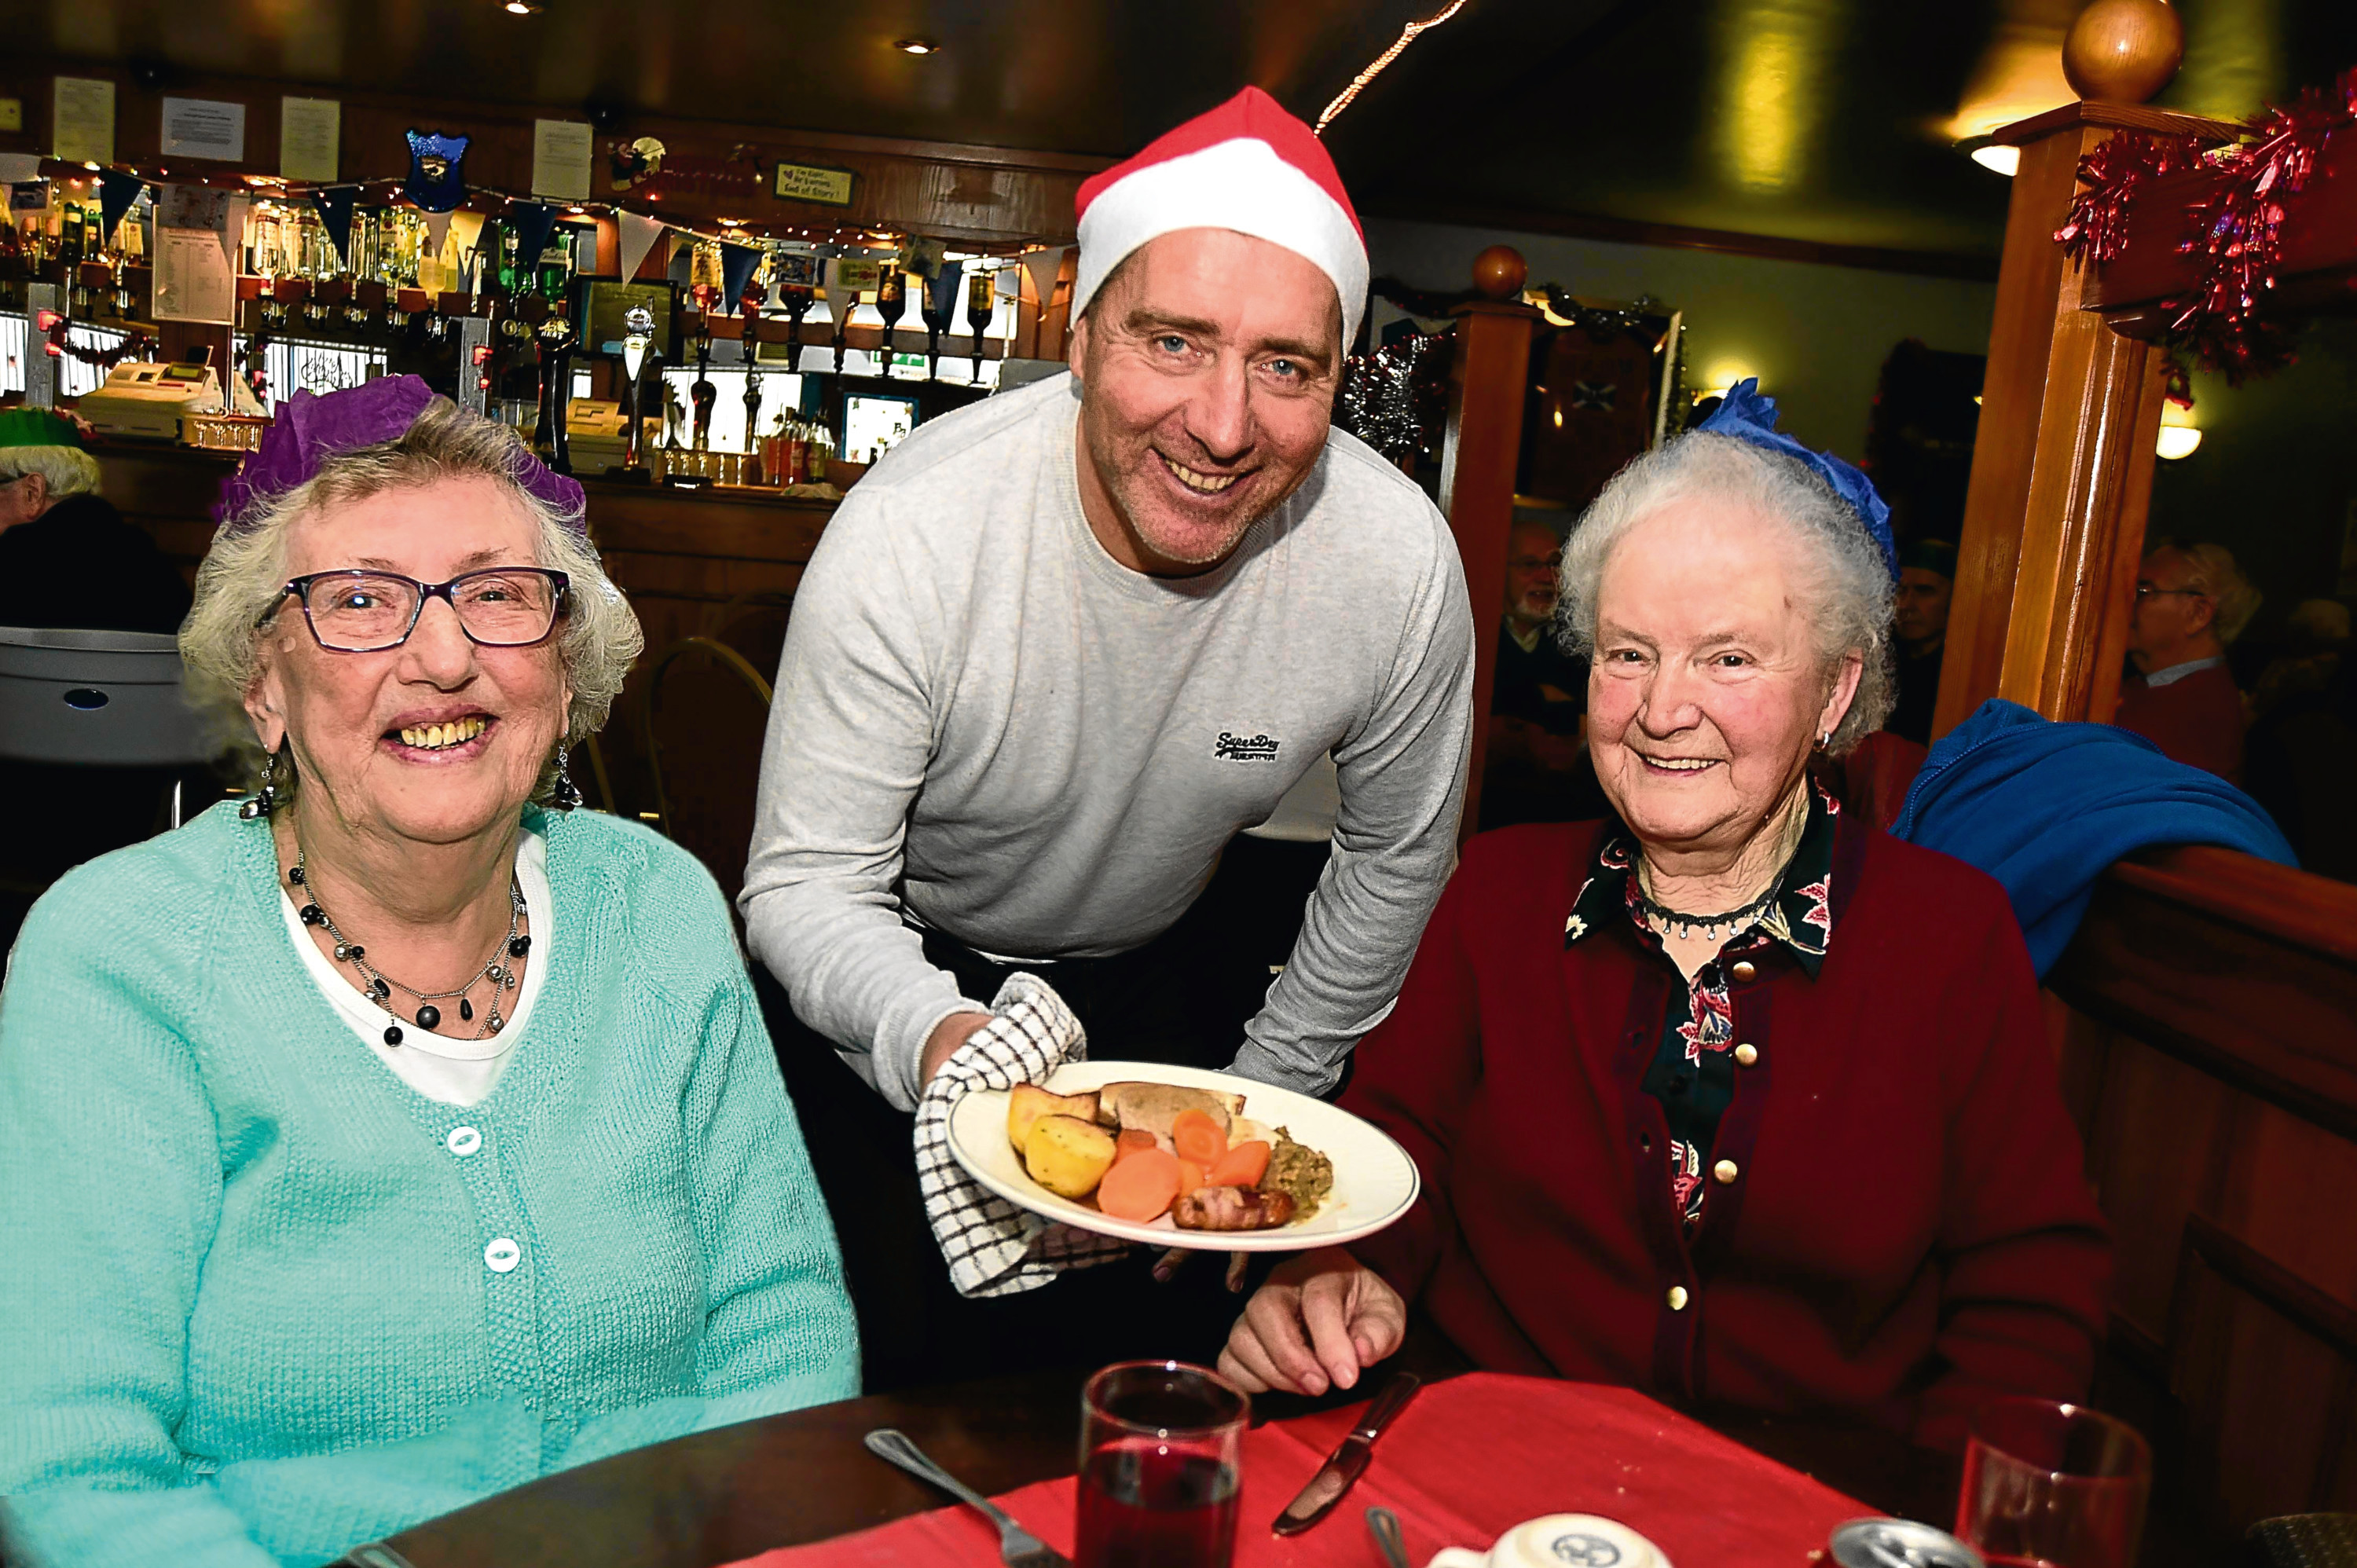 PETERHEAD FC MANAGER JIM MCINALLY SERVES UP THE TURKEY TO ELEANOR WALKER (L) AND DAISY DUNCAN AT THE BALMOOR CHRISTMAS LUNCH FOR LONELY PEOPLE.